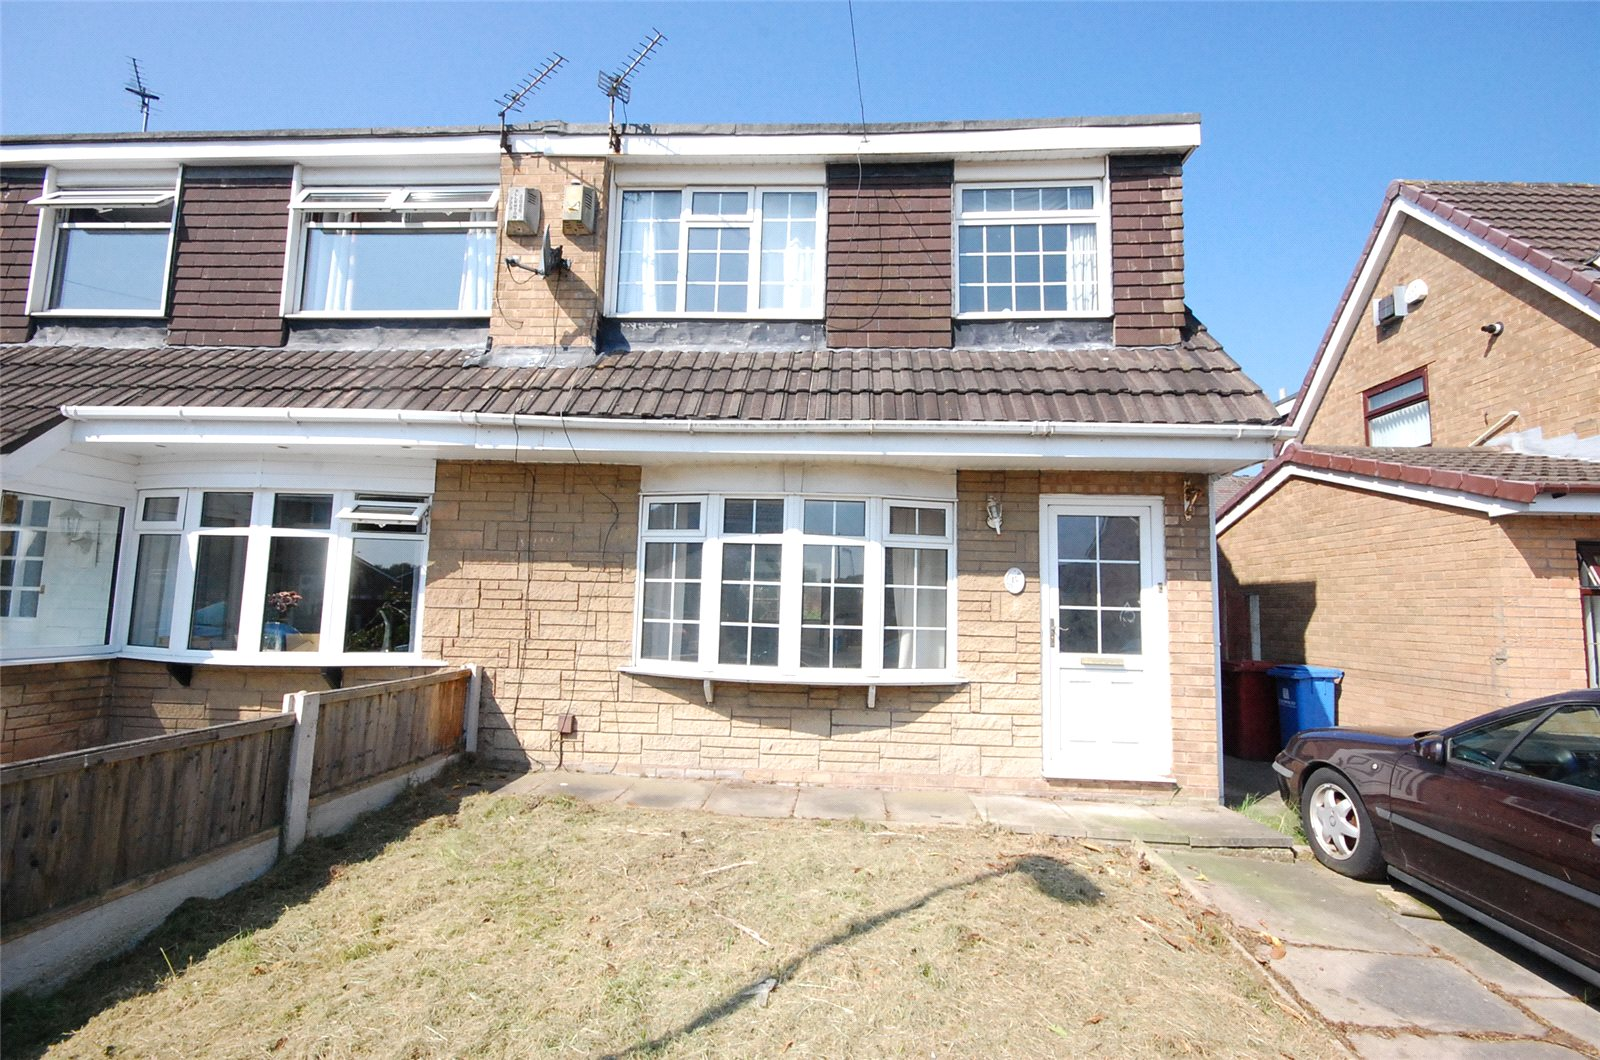 3 Bedrooms Semi Detached House for sale in Grassington Crescent, Woolton, Liverpool, L25